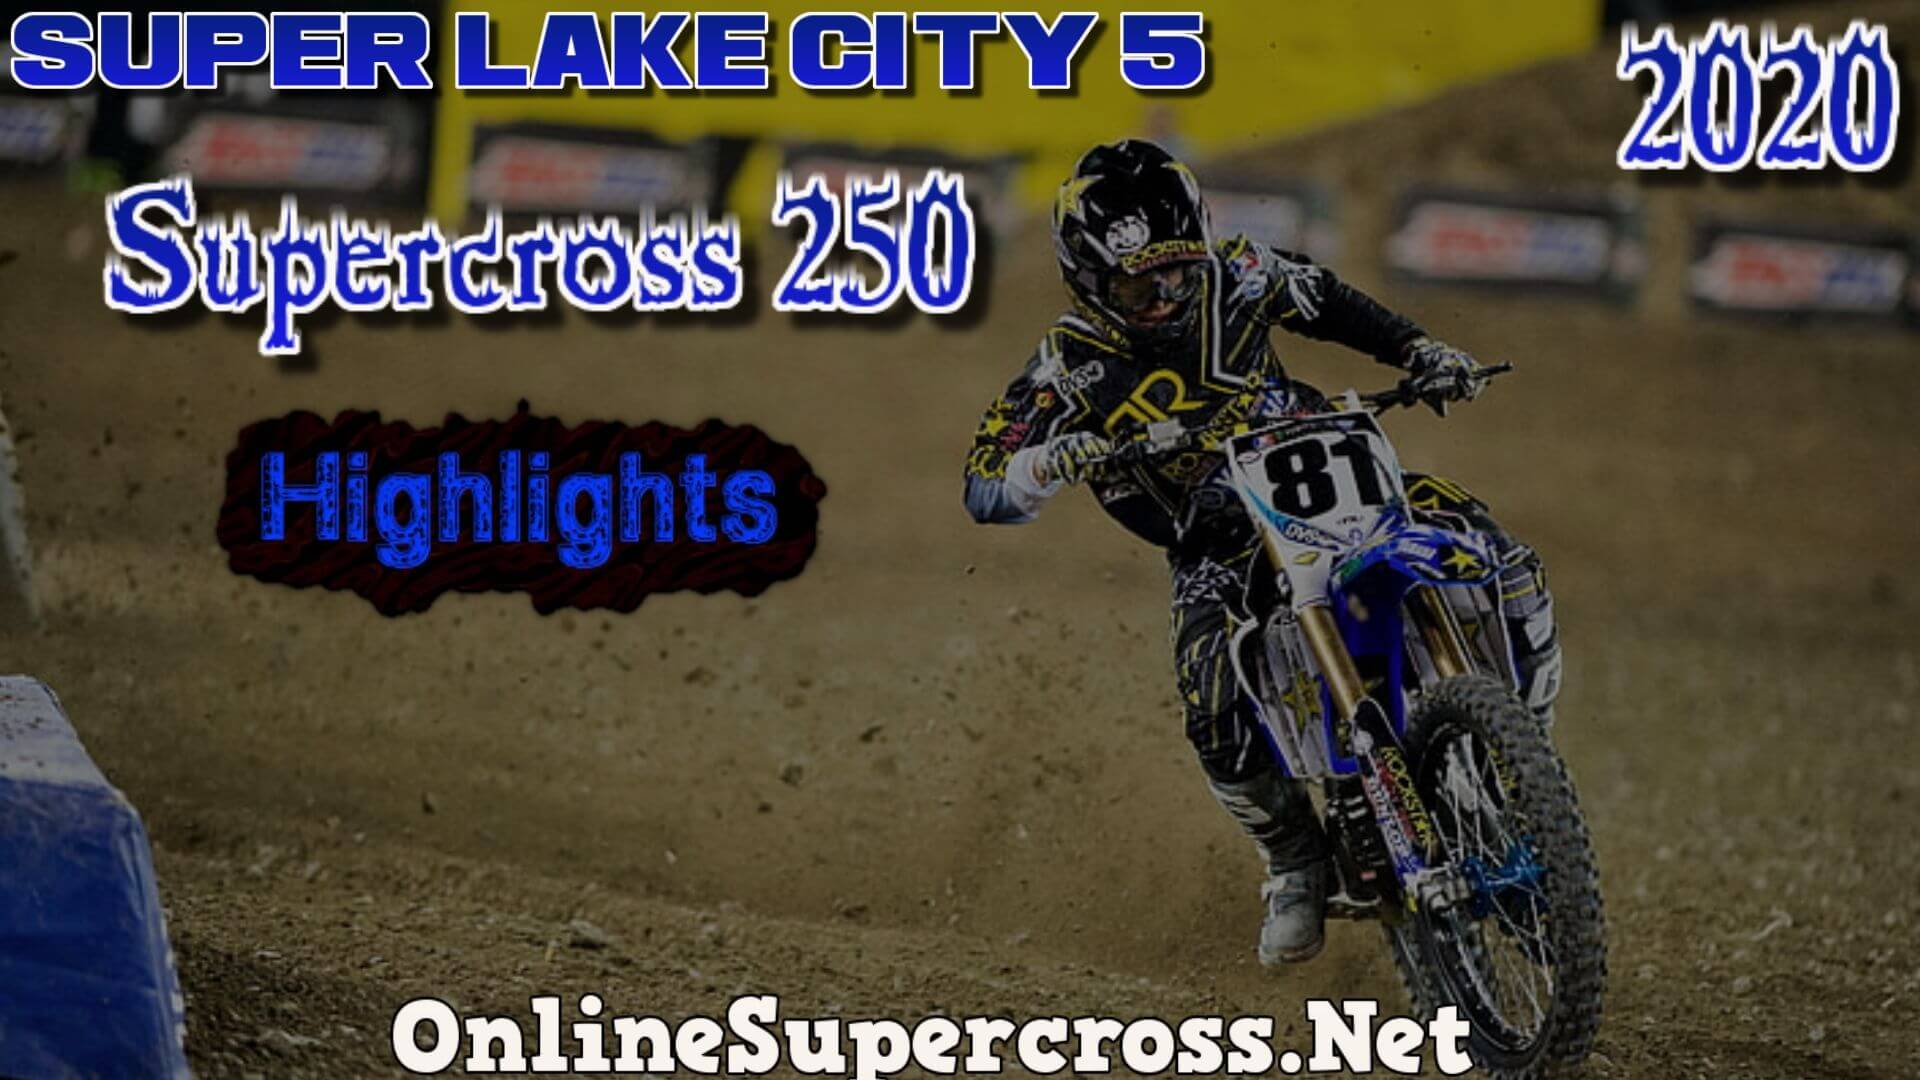 Super Lake City 5 Supercross 250 Highlights 2020